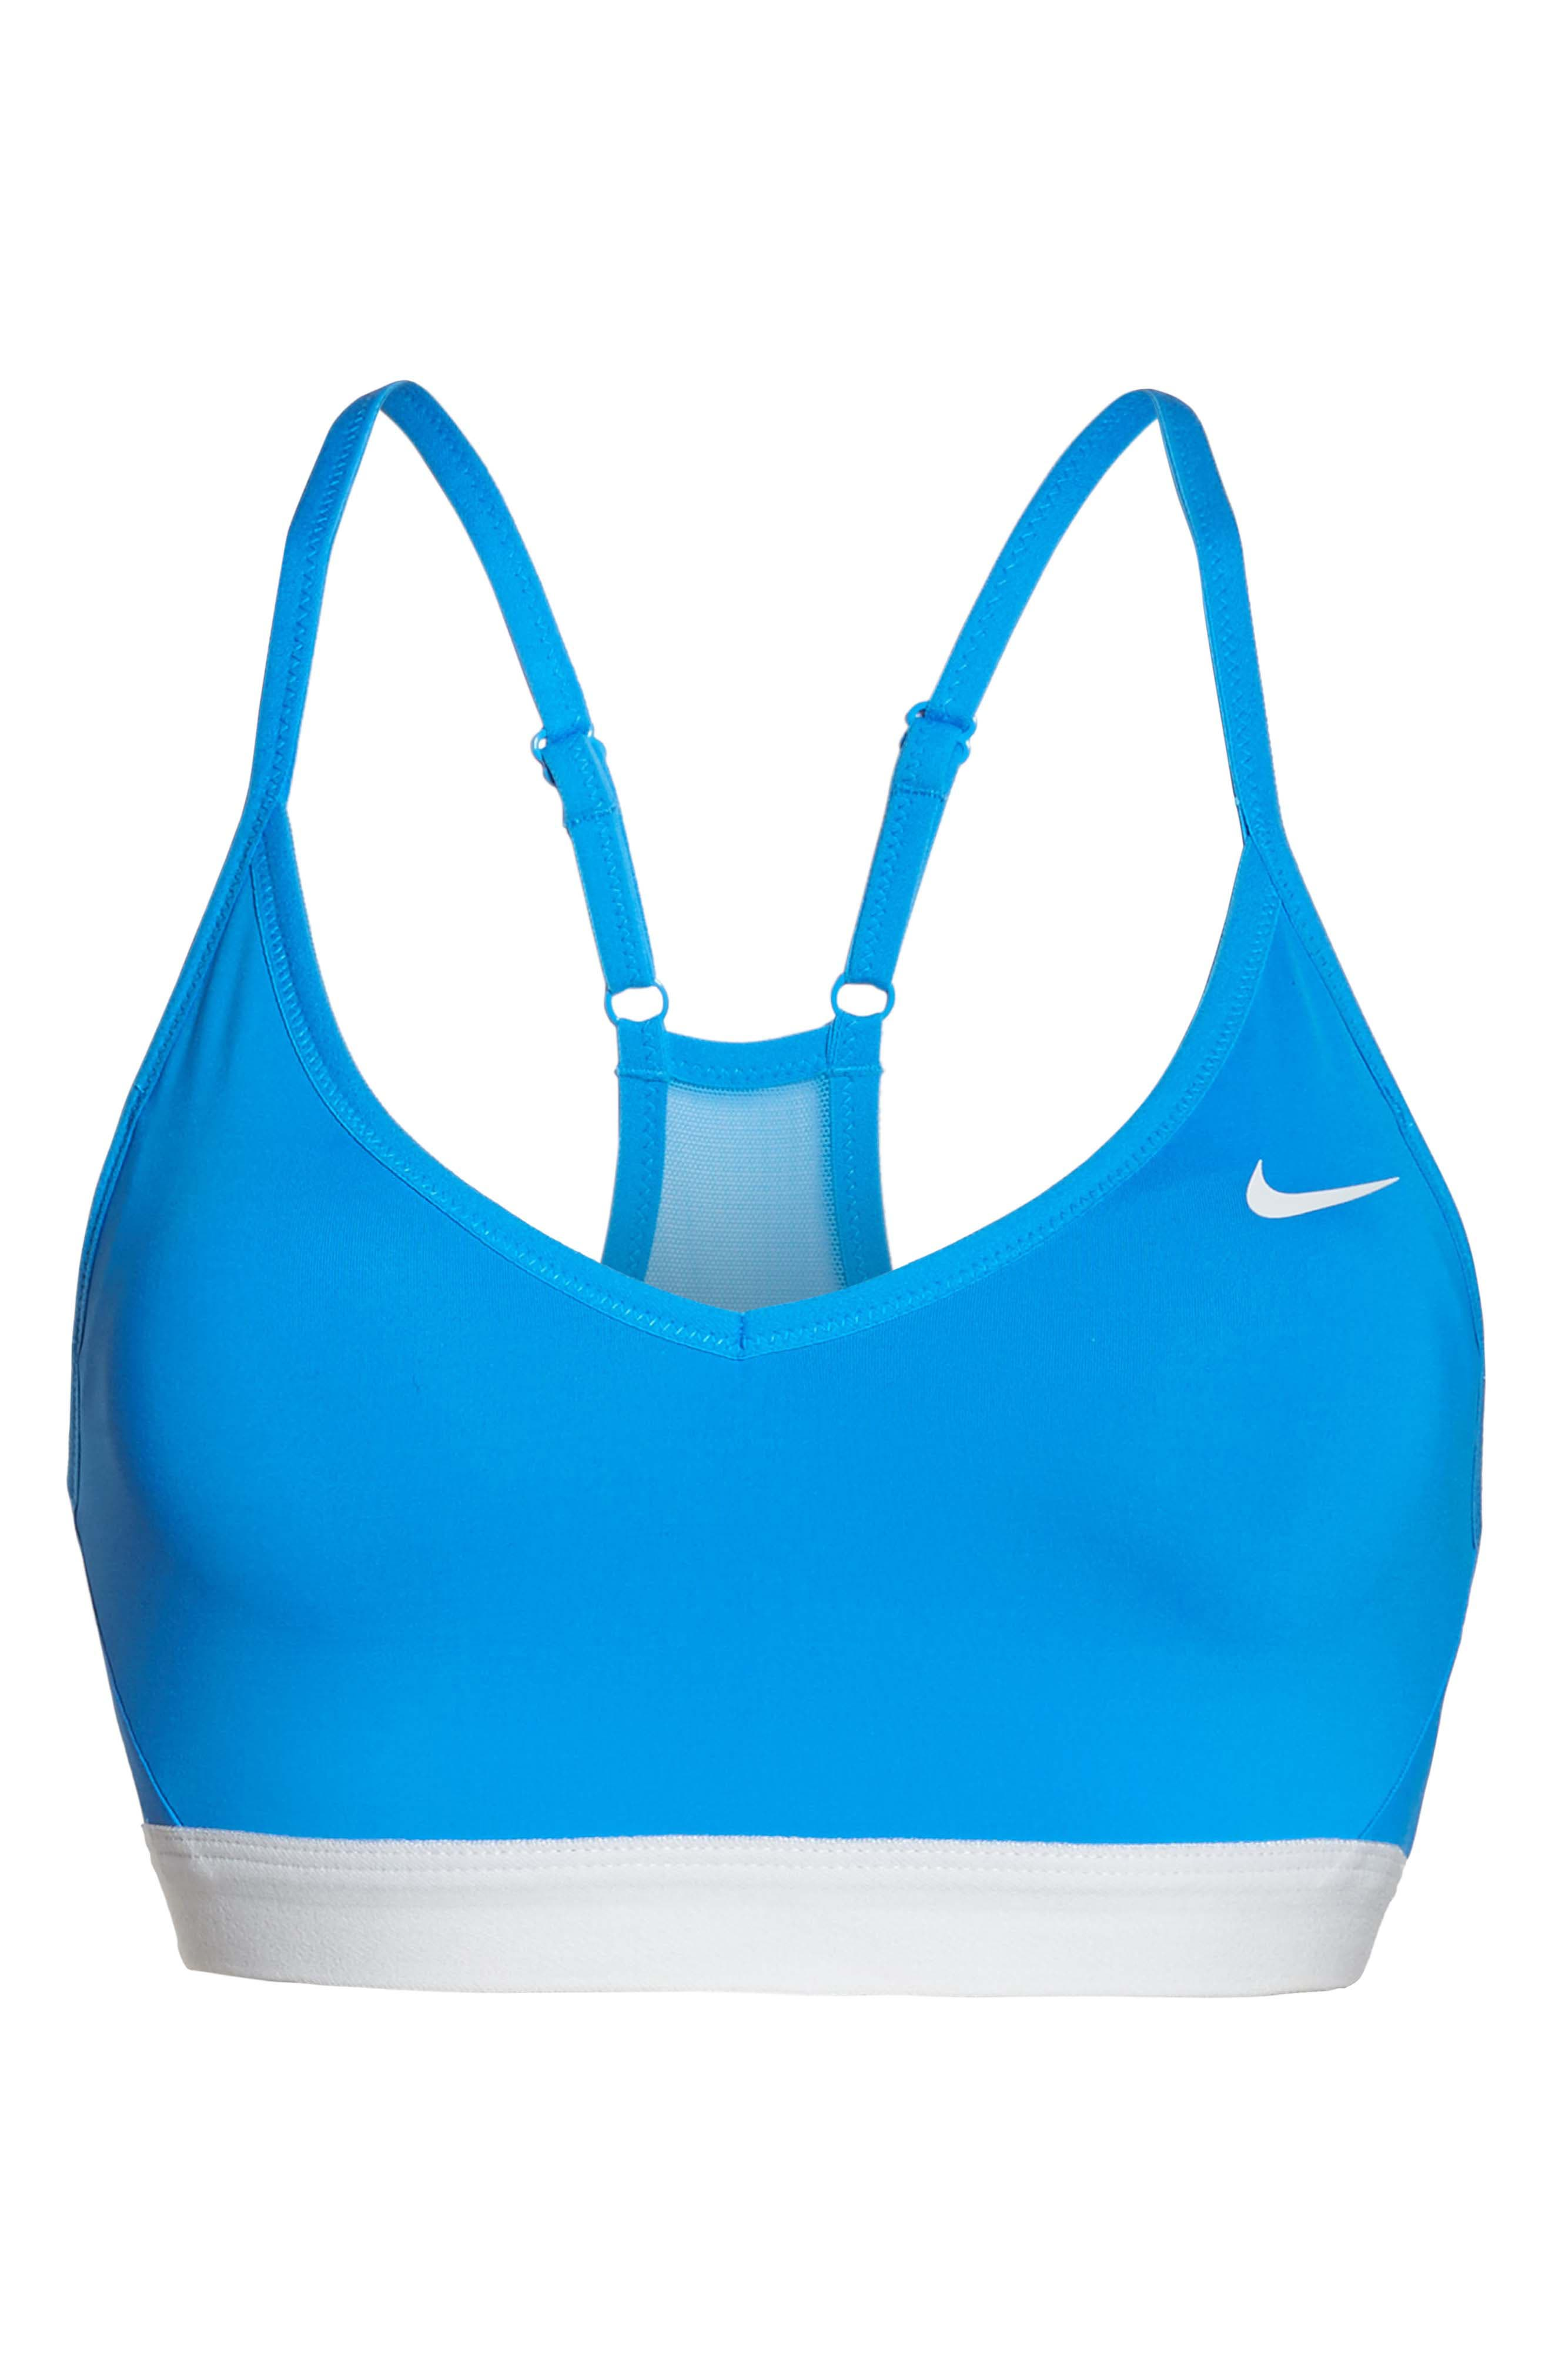 Pro Indy Dry Sports Bra,                             Alternate thumbnail 7, color,                             Lt Photo Blue/ Pure Platinum